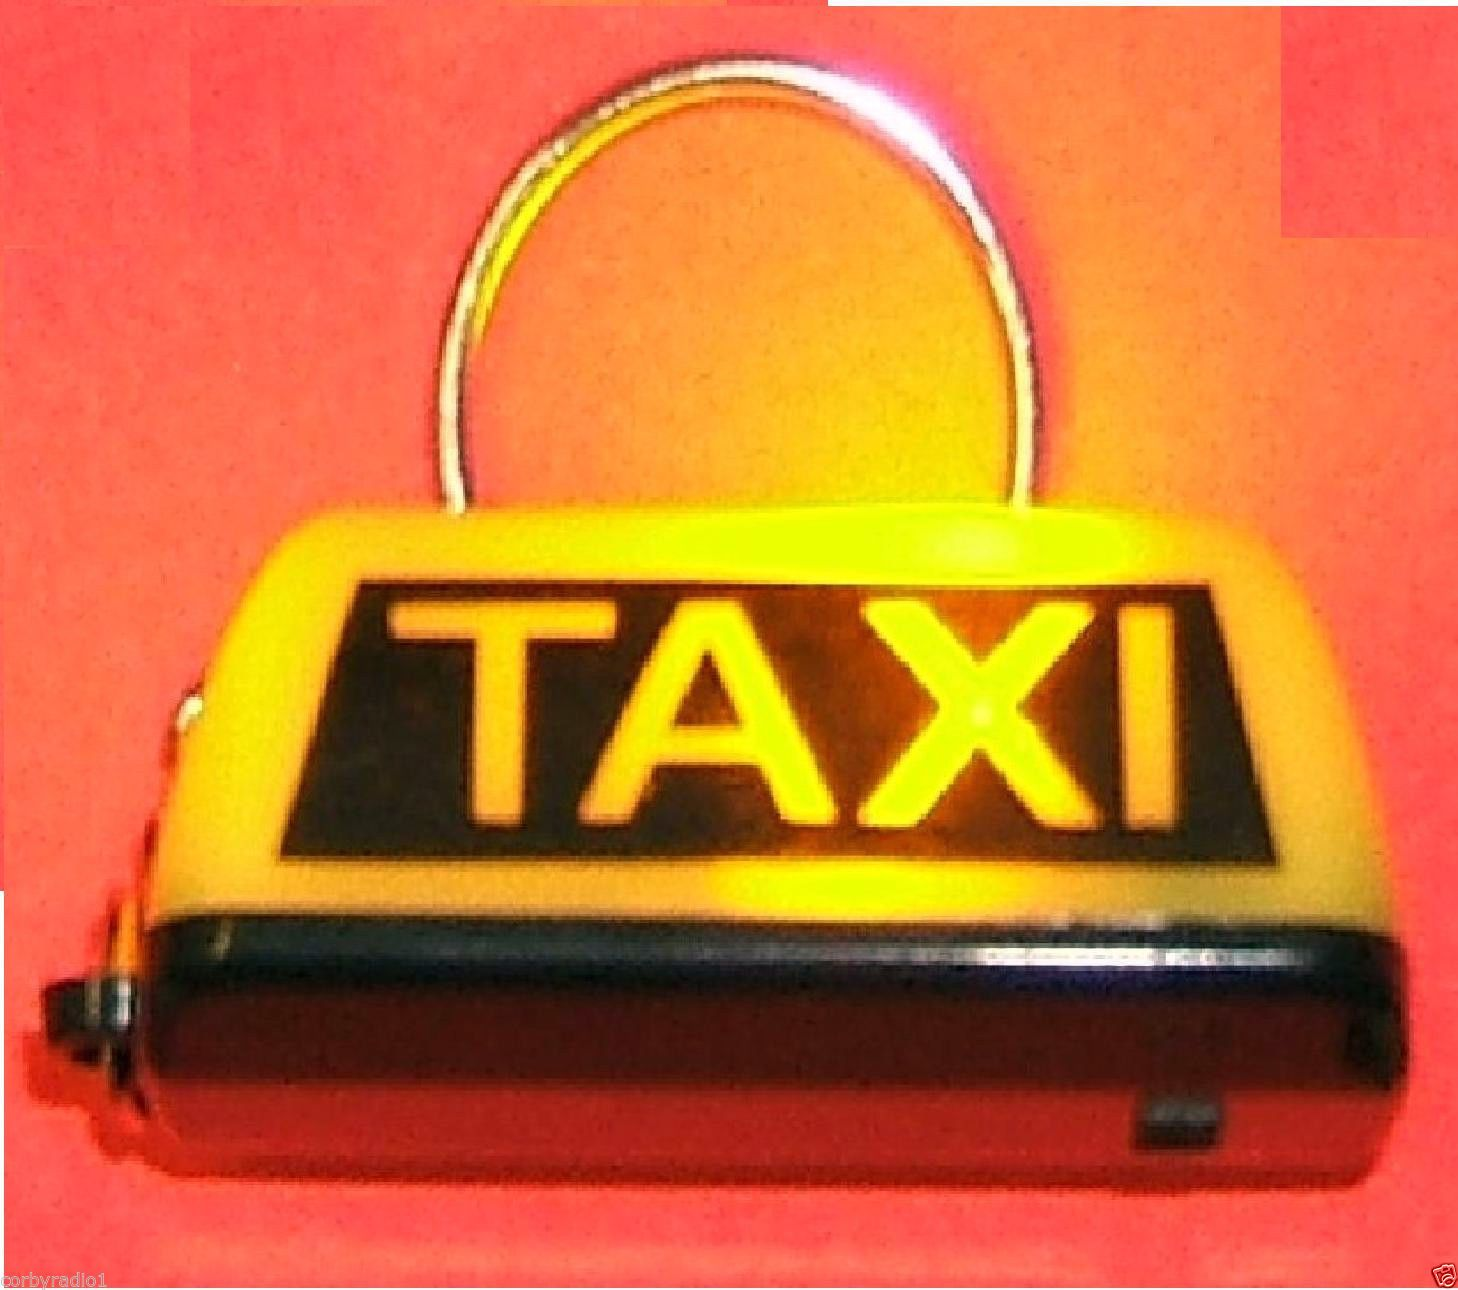 Taxi Key Ring In Yellow With Switch To Illuminate Taxi Yellow 1809 P additionally Cx11 in addition 131055874313 furthermore Sigma Sp 150 20ft Swaged Aluminium Poles Set Of 4 X Tv Ham Radio Cb An na further Beechcraft Starship 2000 T11. on taxi radio antenna